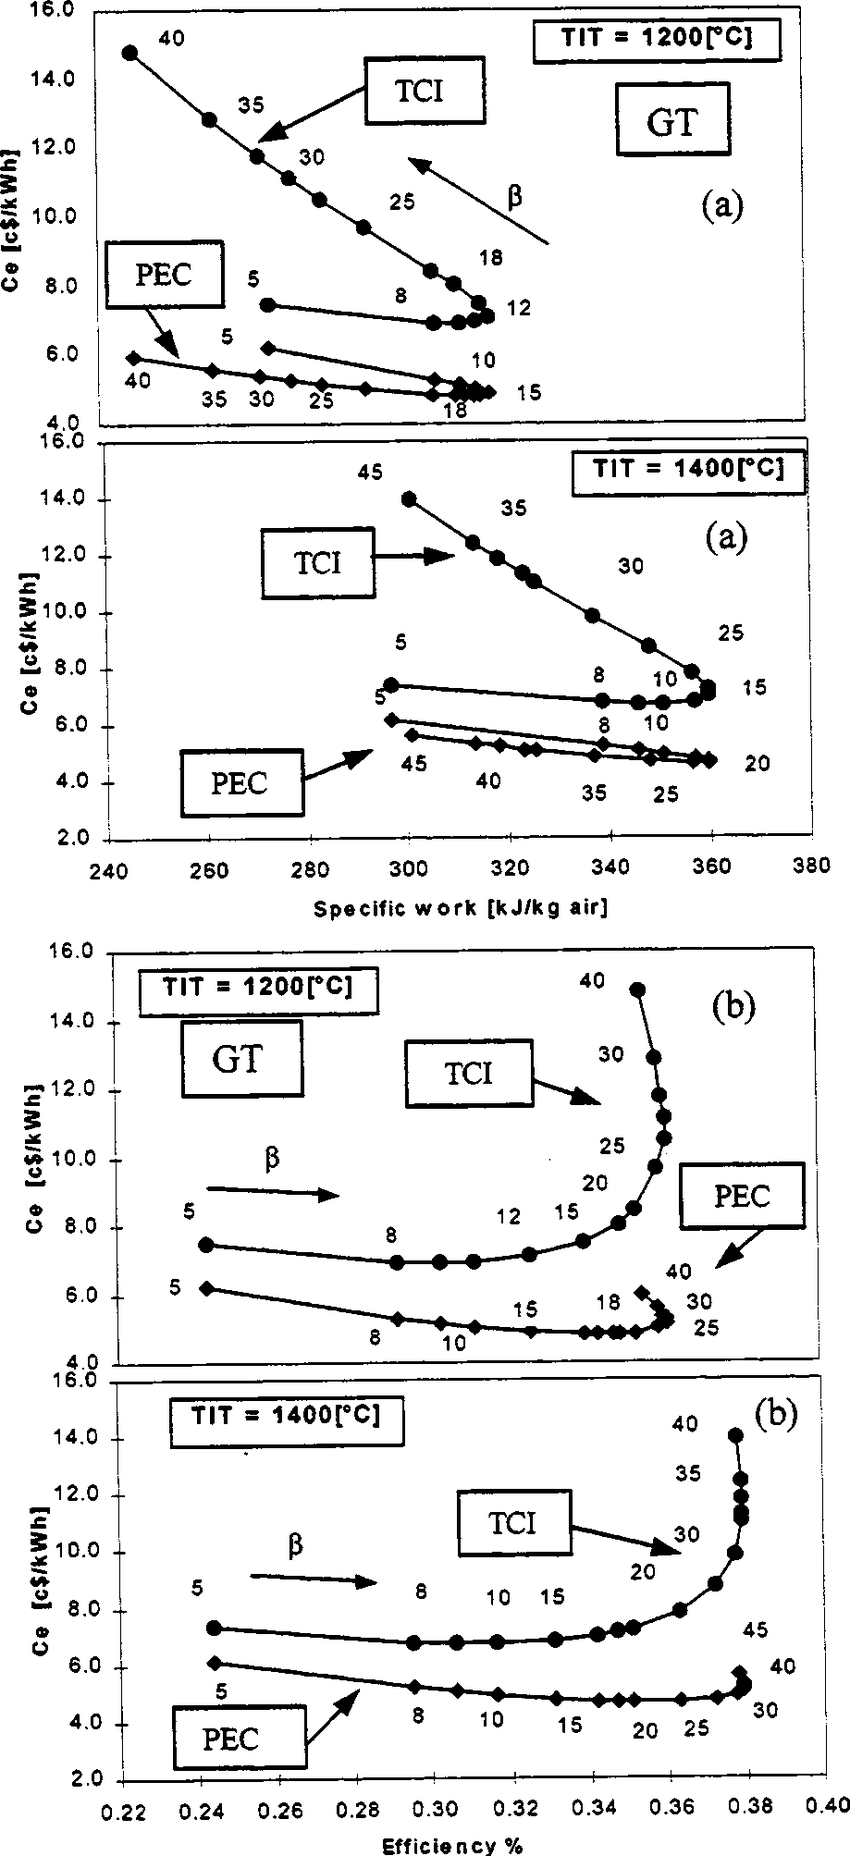 medium resolution of simple cycle gas turbine cost versus specific work a and cost versus efficiency